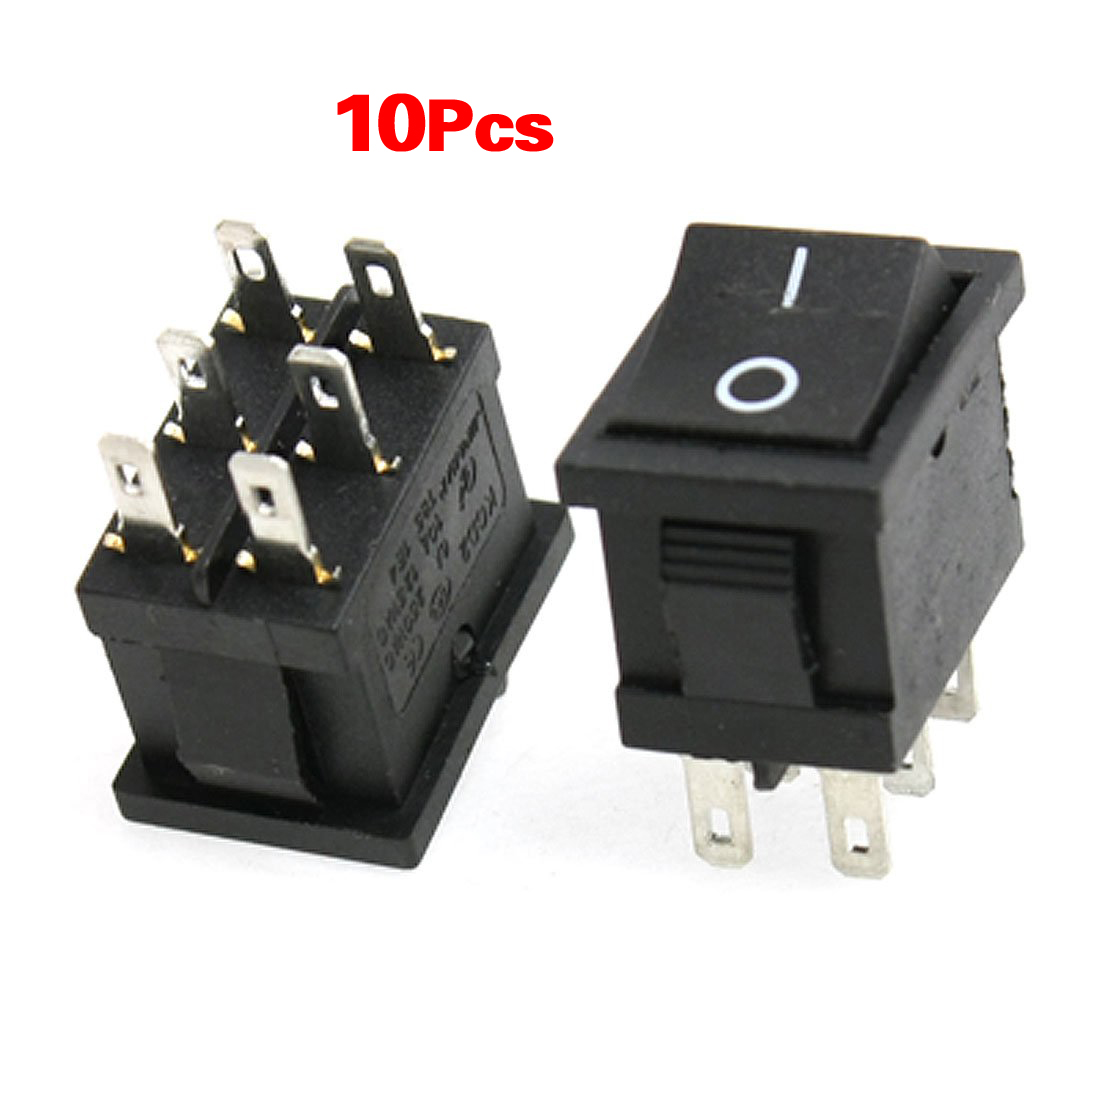 Promotion! 10pcs AC 6A/250V 10A/125V 6 Pin DPDT ON/ON 2 Position Snap In Boat Rocker Switch 20pcs lot mini boat rocker switch spst snap in ac 250v 3a 125v 6a 2 pin on off 10 15mm free shipping